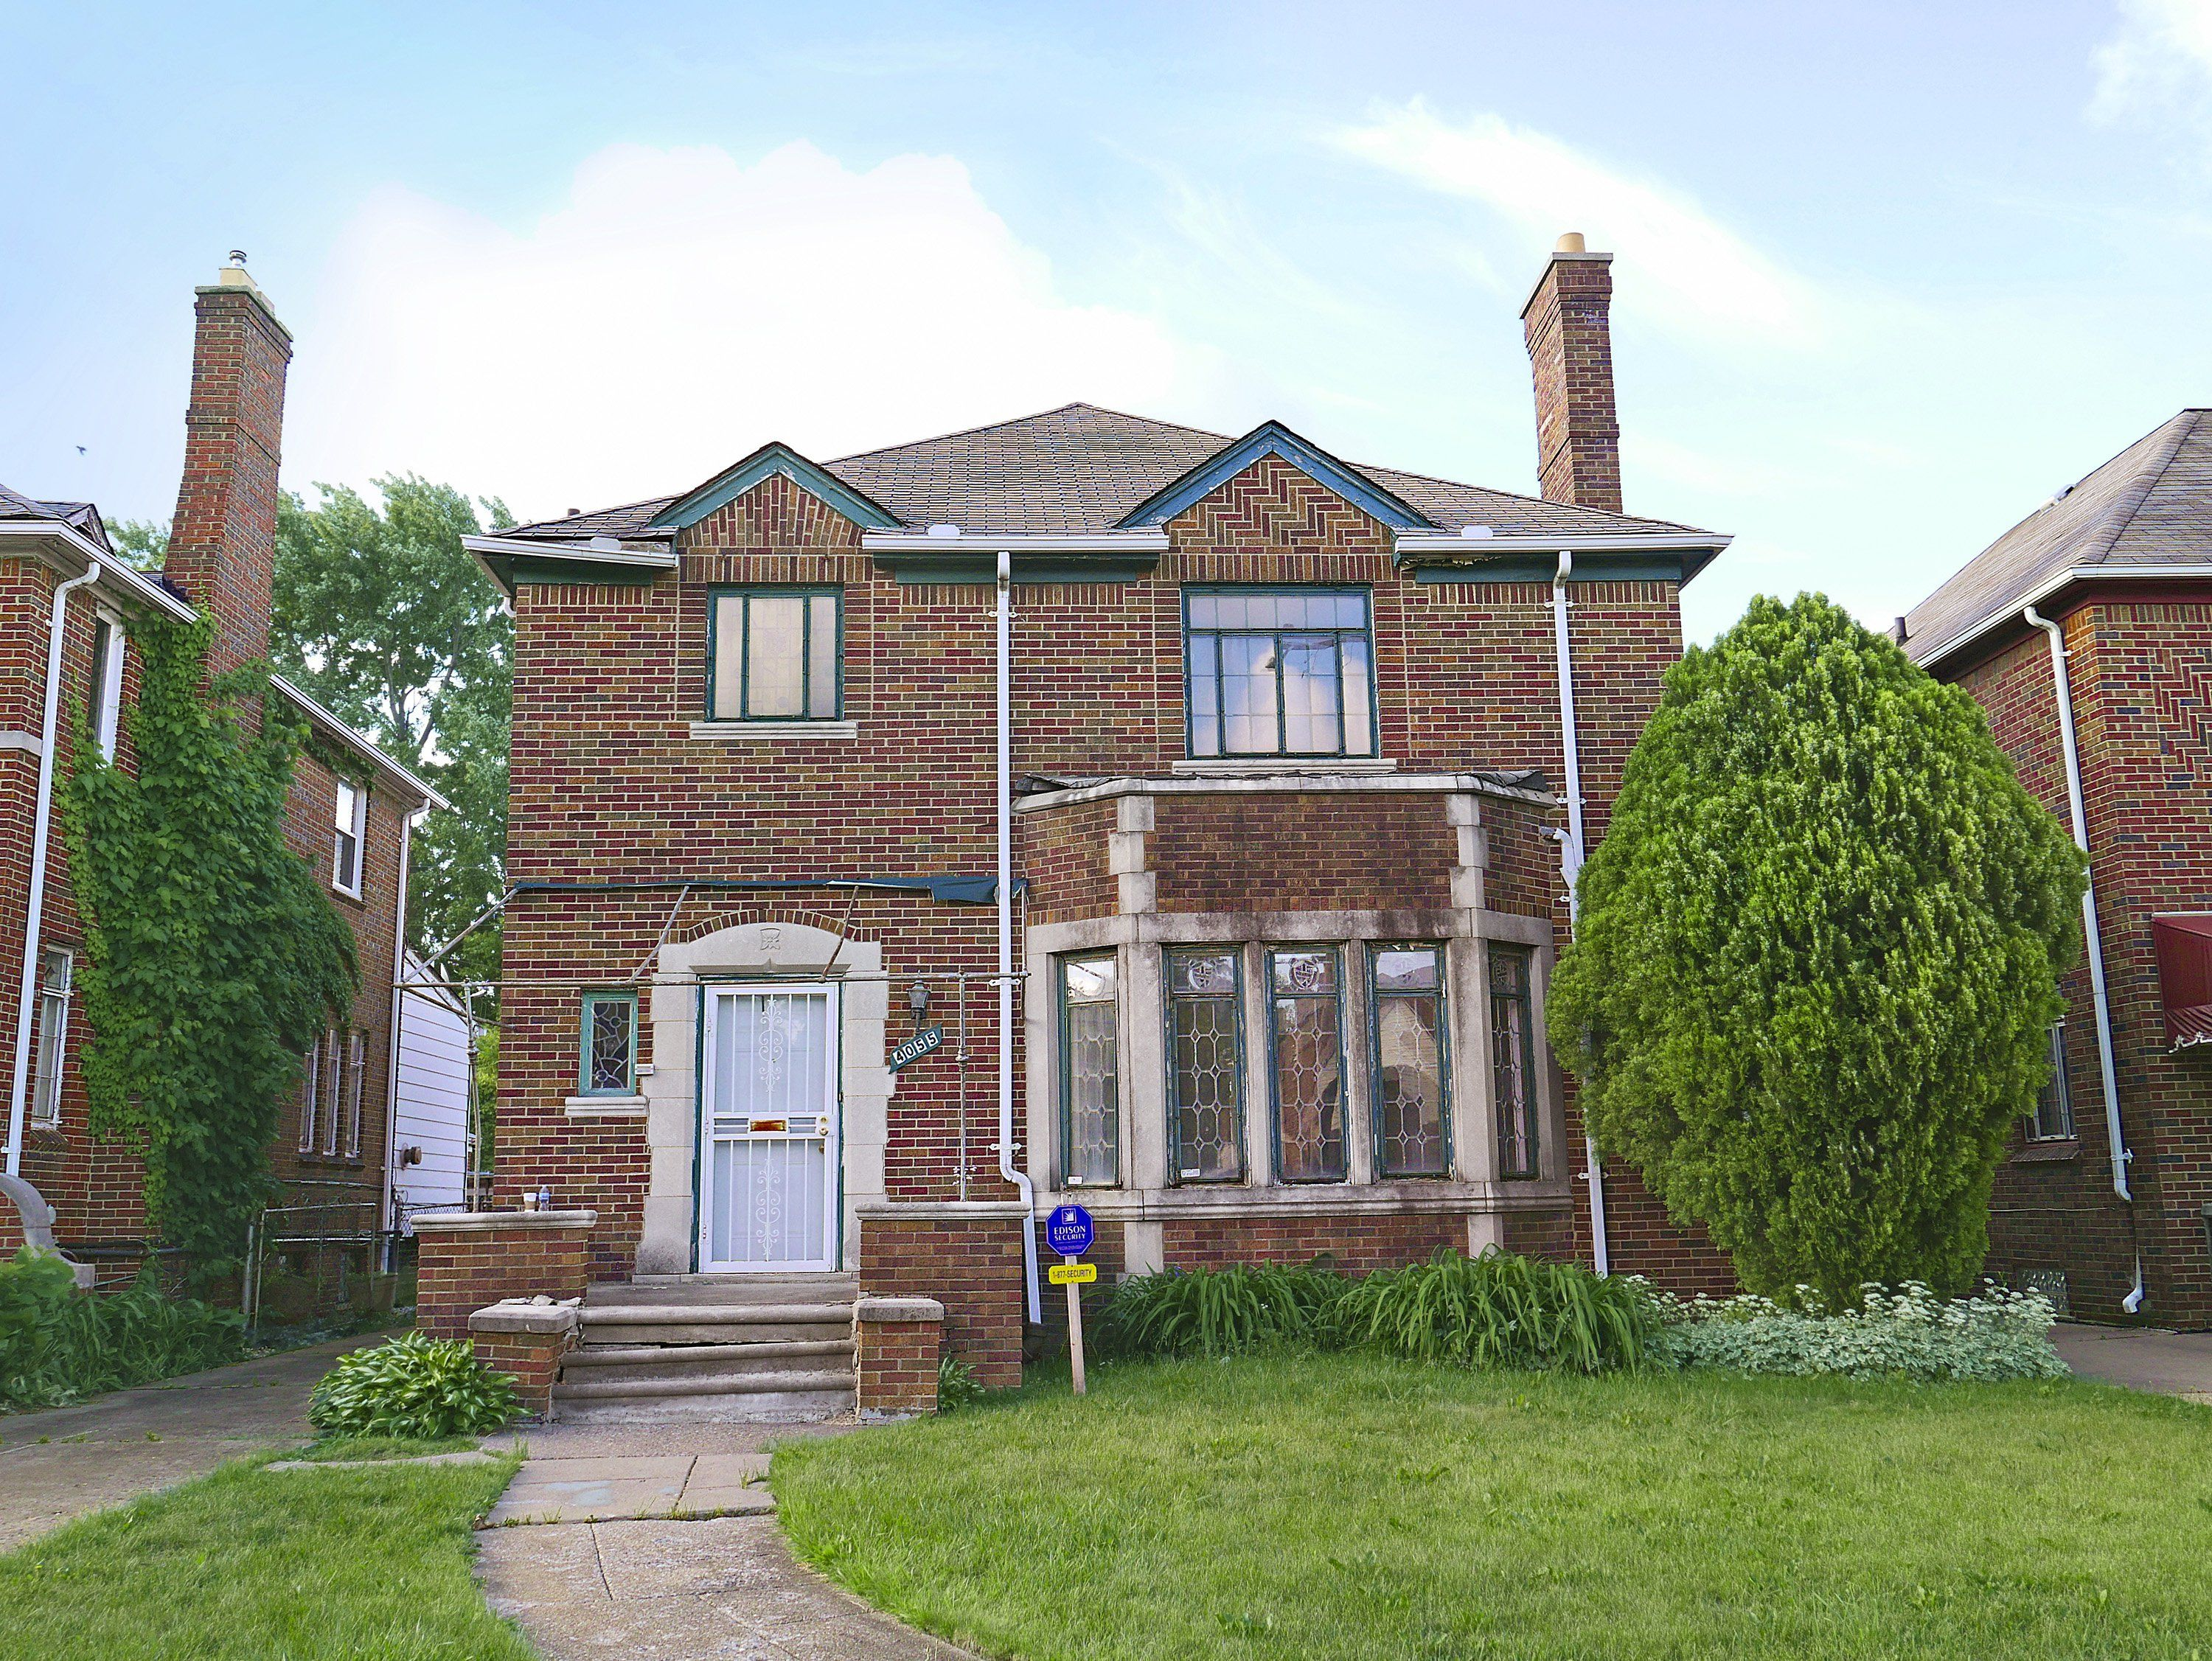 The Detroit House: Before